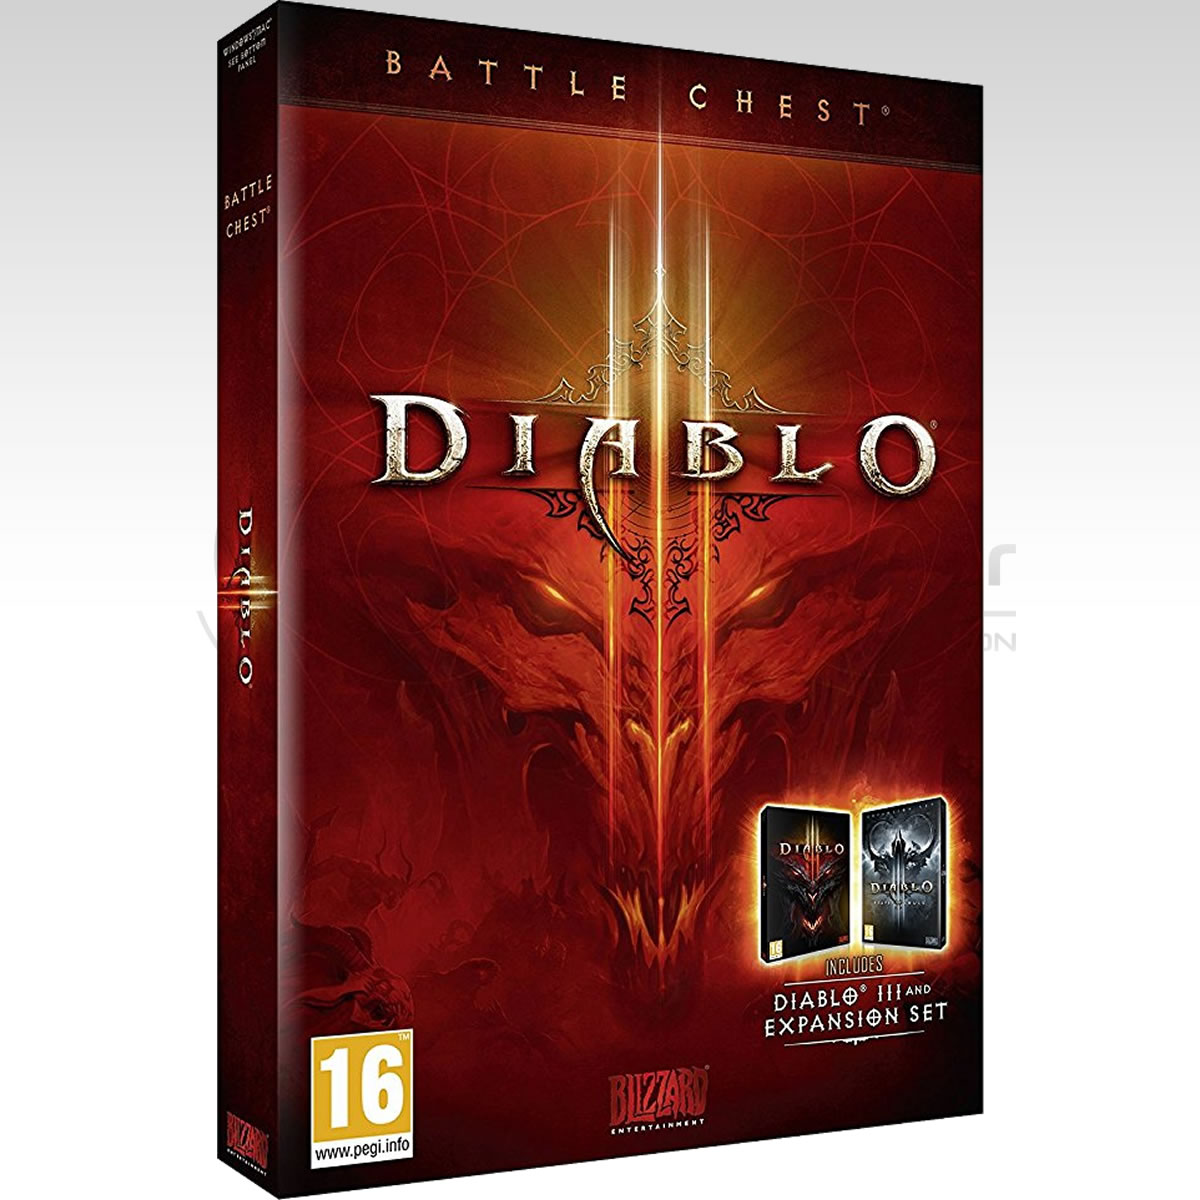 DIABLO III: BATTLE CHEST (PC)